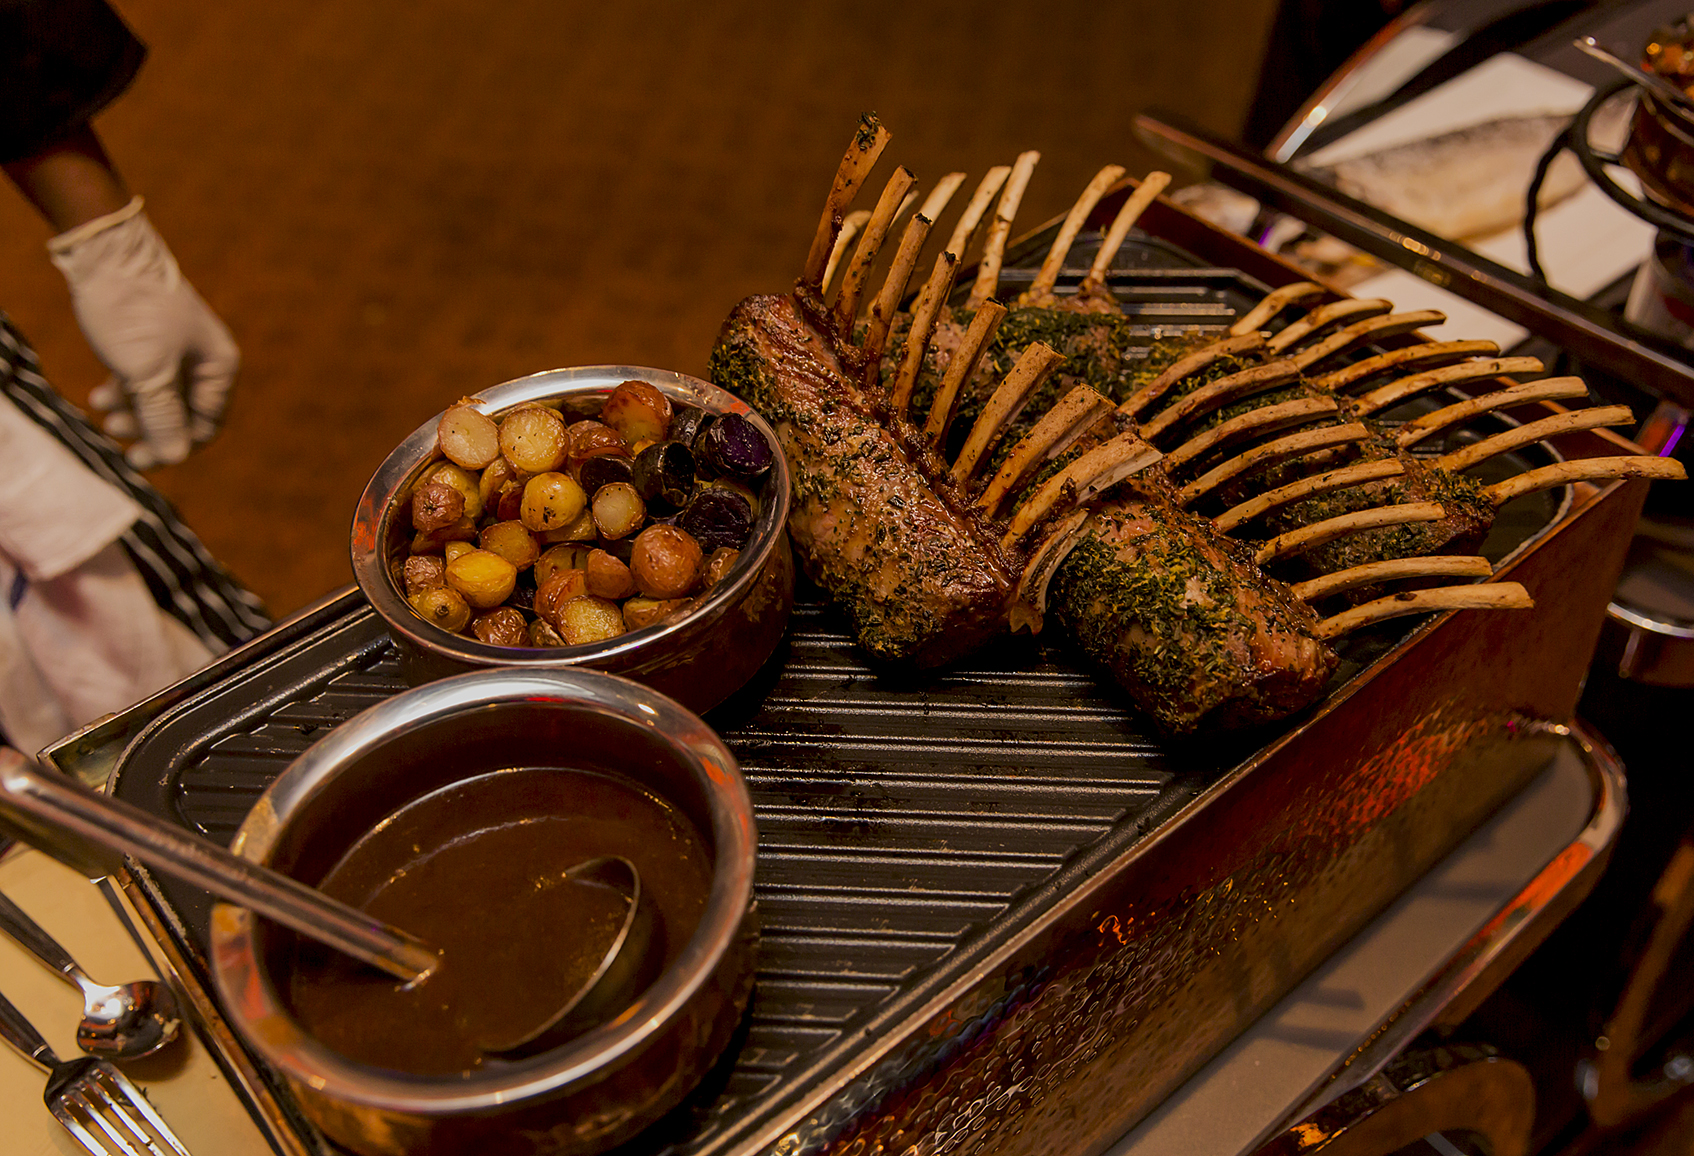 Rack of lamb with potatoes and gravy